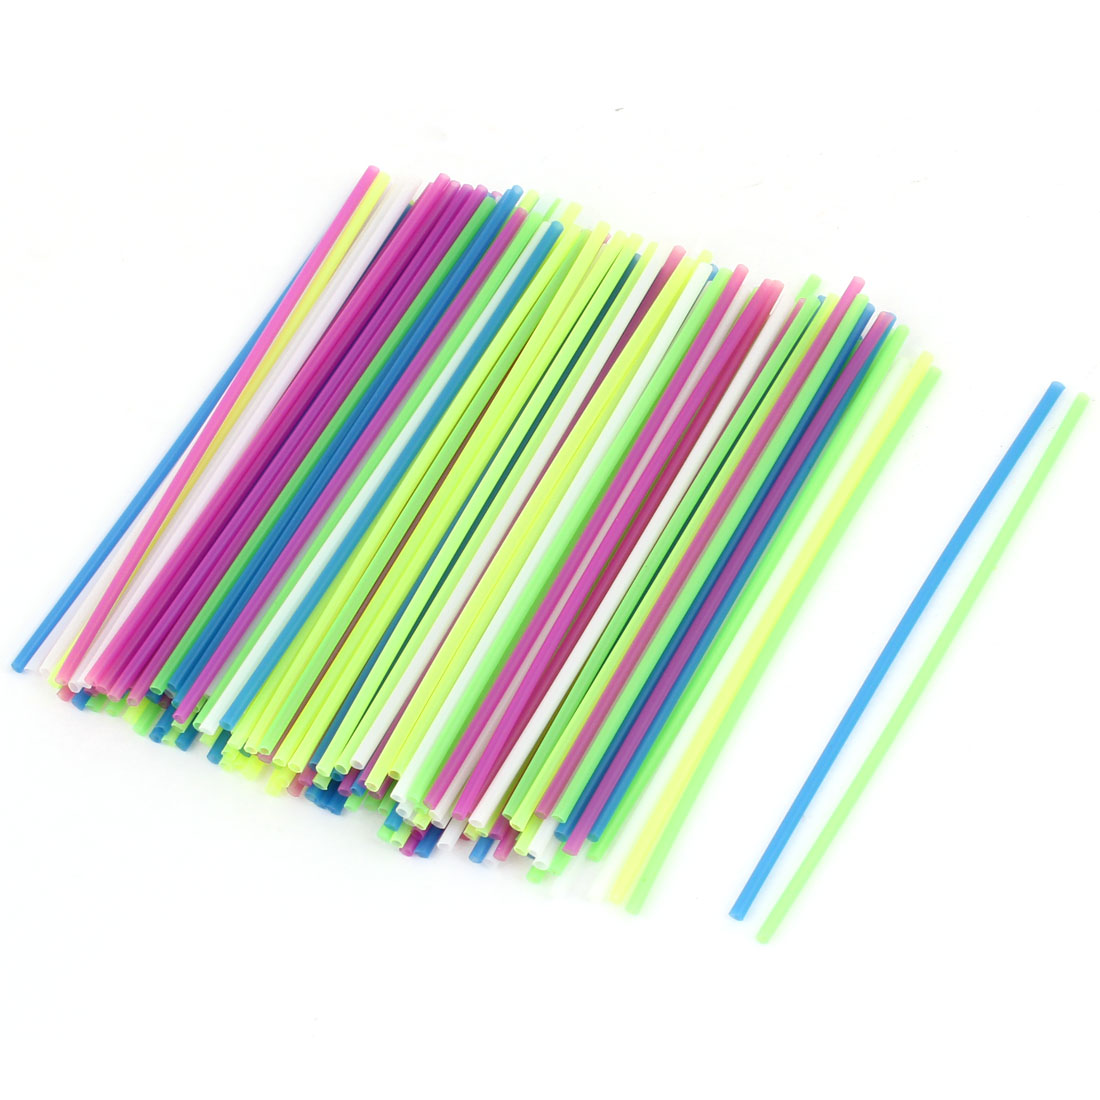 2 Bags Assorted Color Plastic Educational DIY Counting Stick for Children